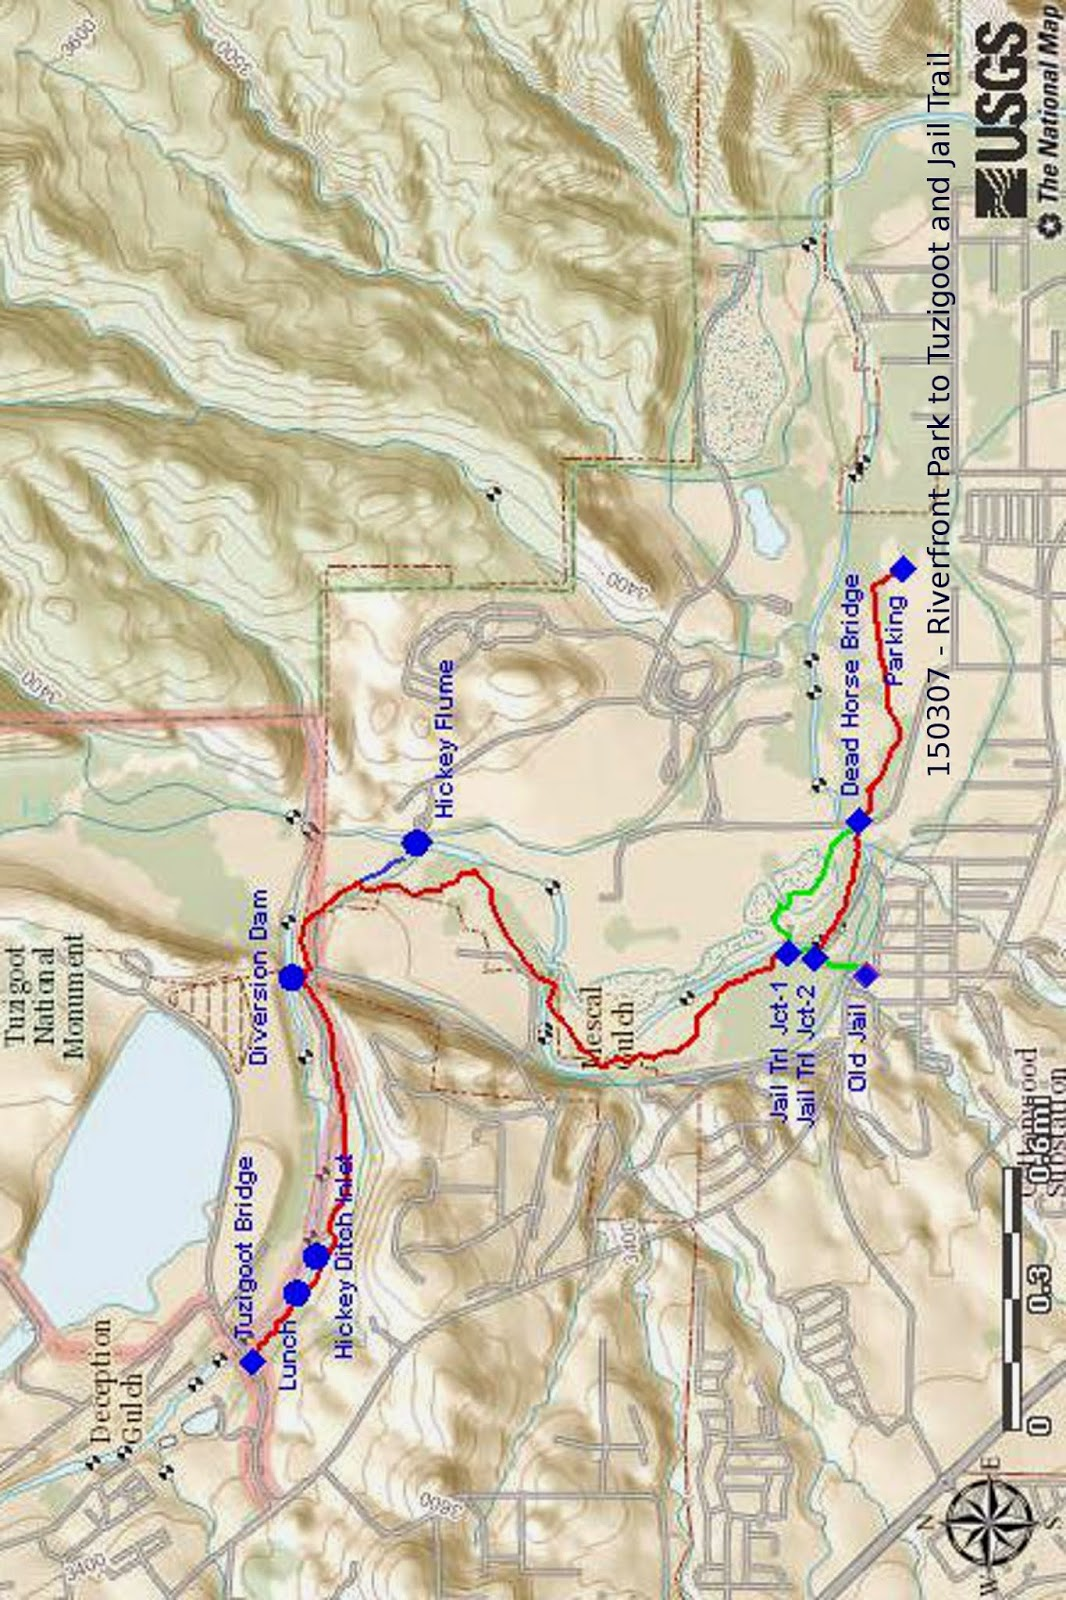 while working on the map i identified the hickey ditch inlet it is located as shown on the map just downstream from where we ate lunch